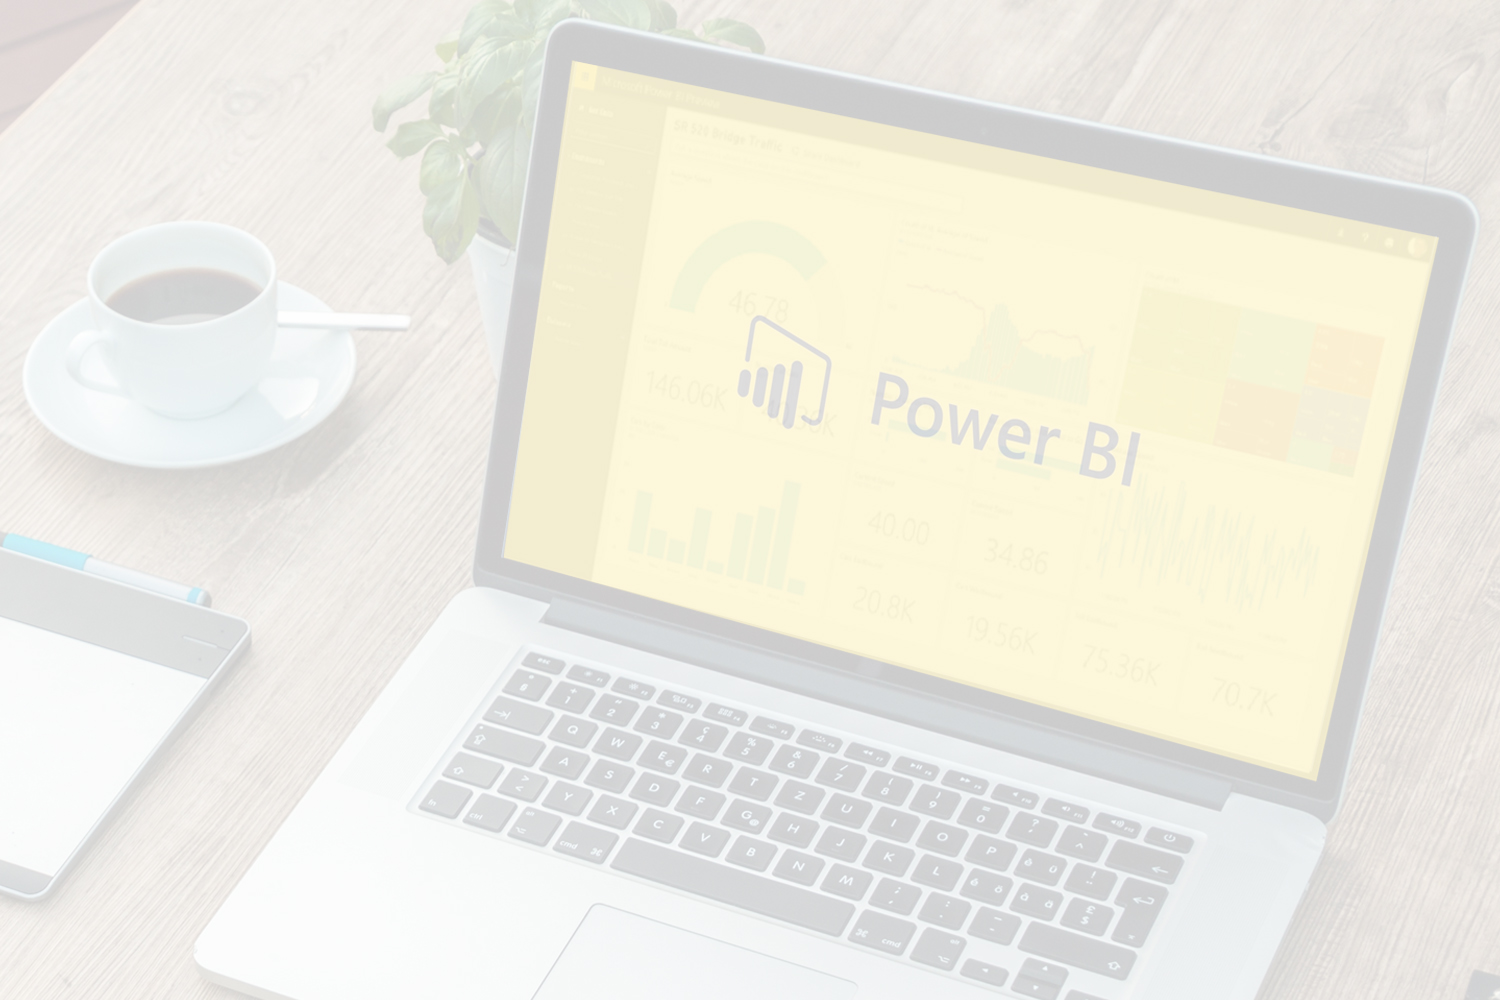 MS Power BI Embedded A-Series - Creating a Custom .NET MVC App